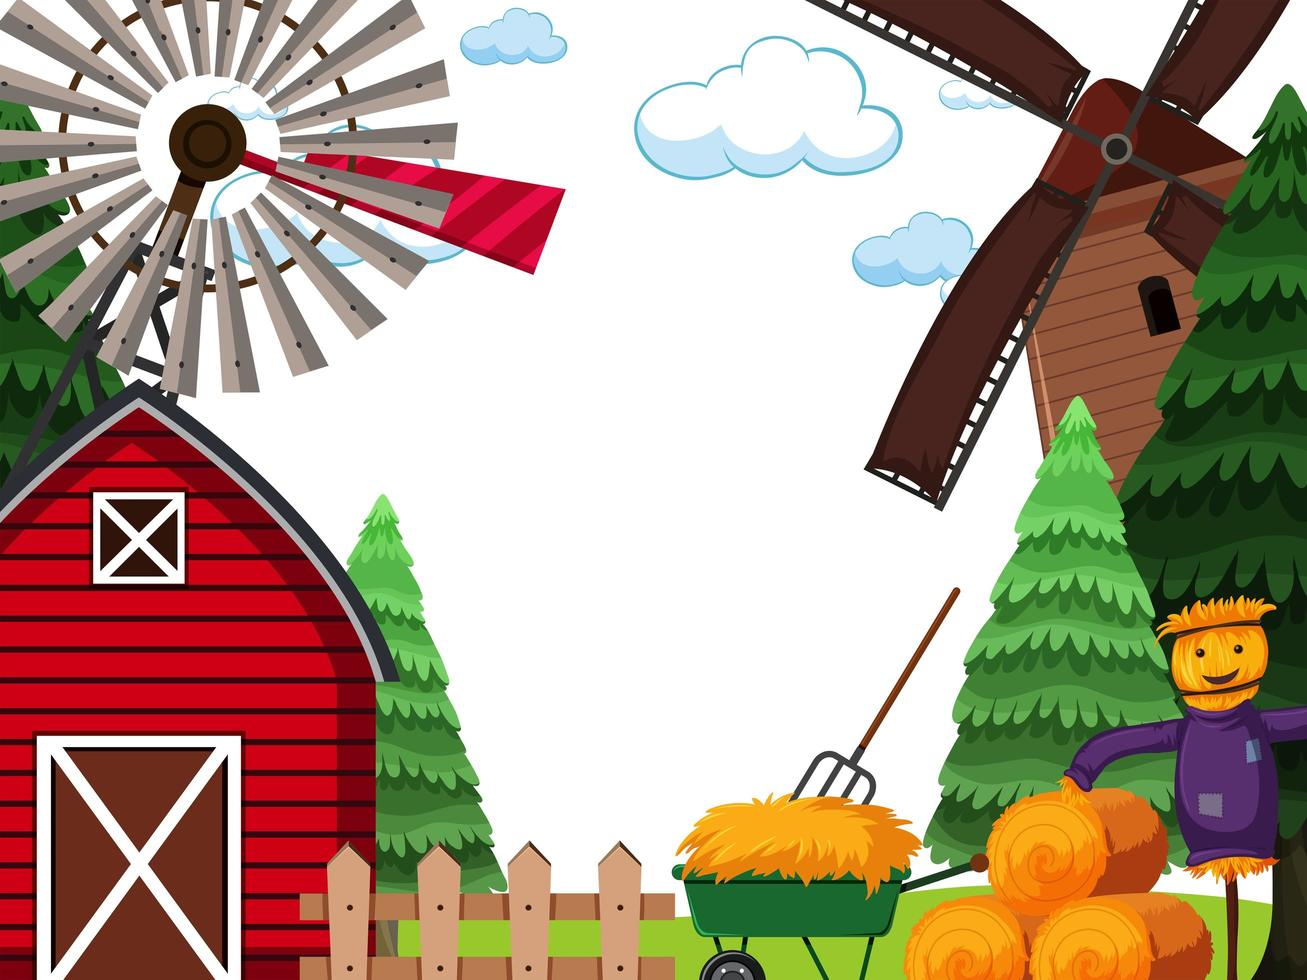 Farm land scape scene vector